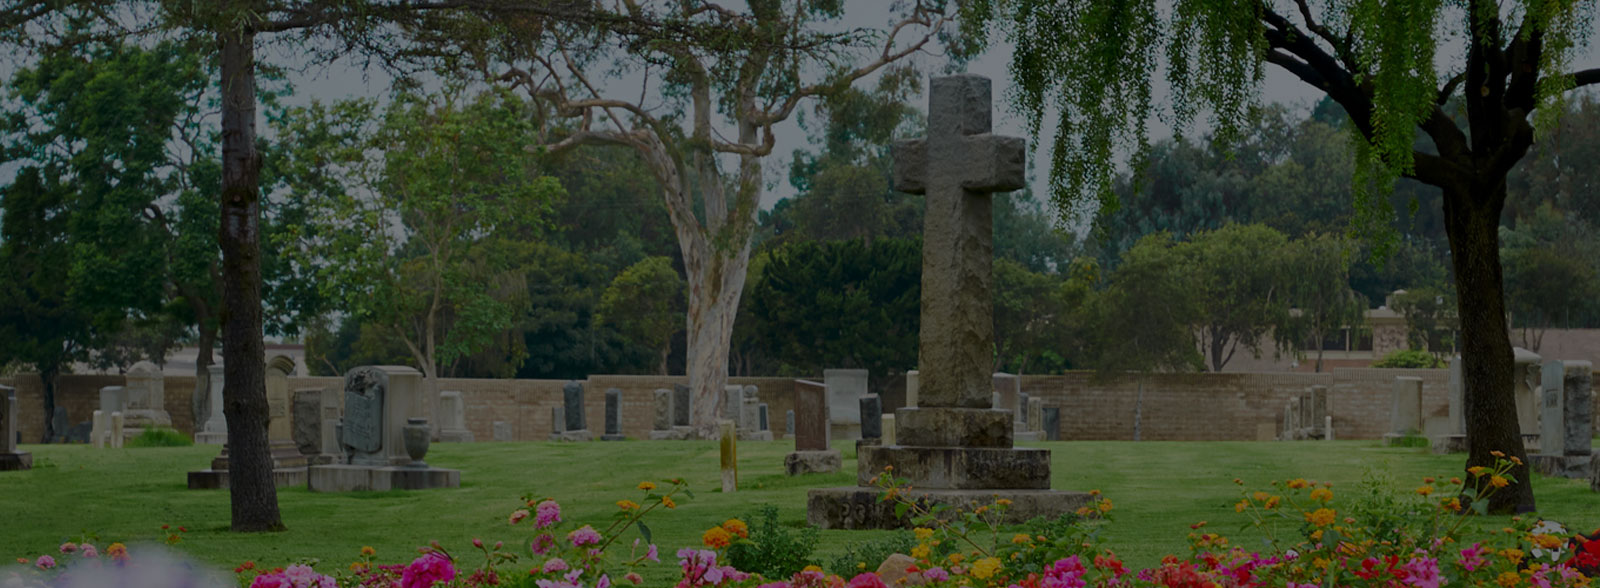 CELEBRATING 100 YEARS AS A NON-PROFIT CEMETERY